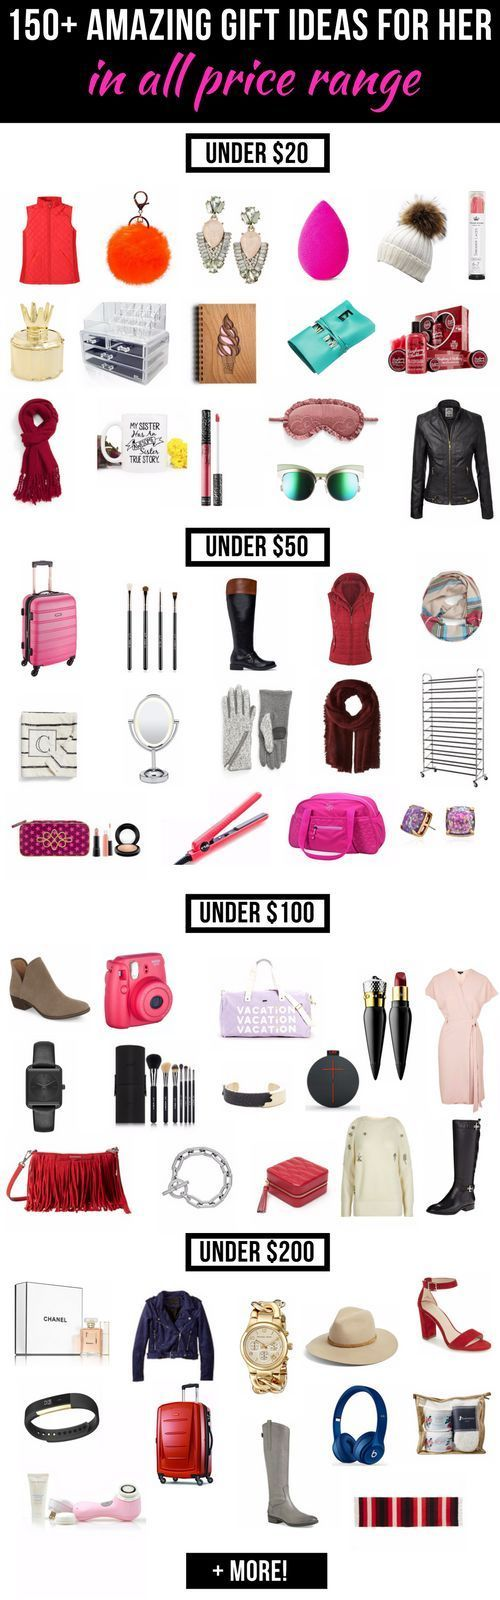 The Ultimate Shopping Gift Guide for Women: [150+ Amazing Gift Ideas ...